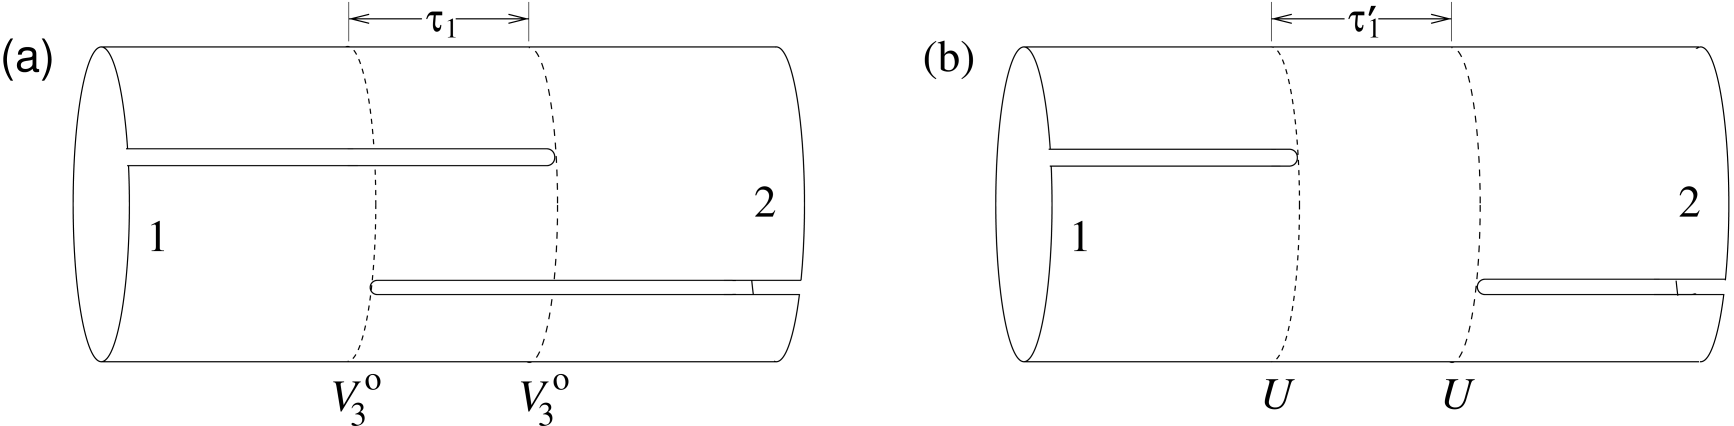 (a) Loop diagram equivalent to the nonplanar diagram NP in Fig.